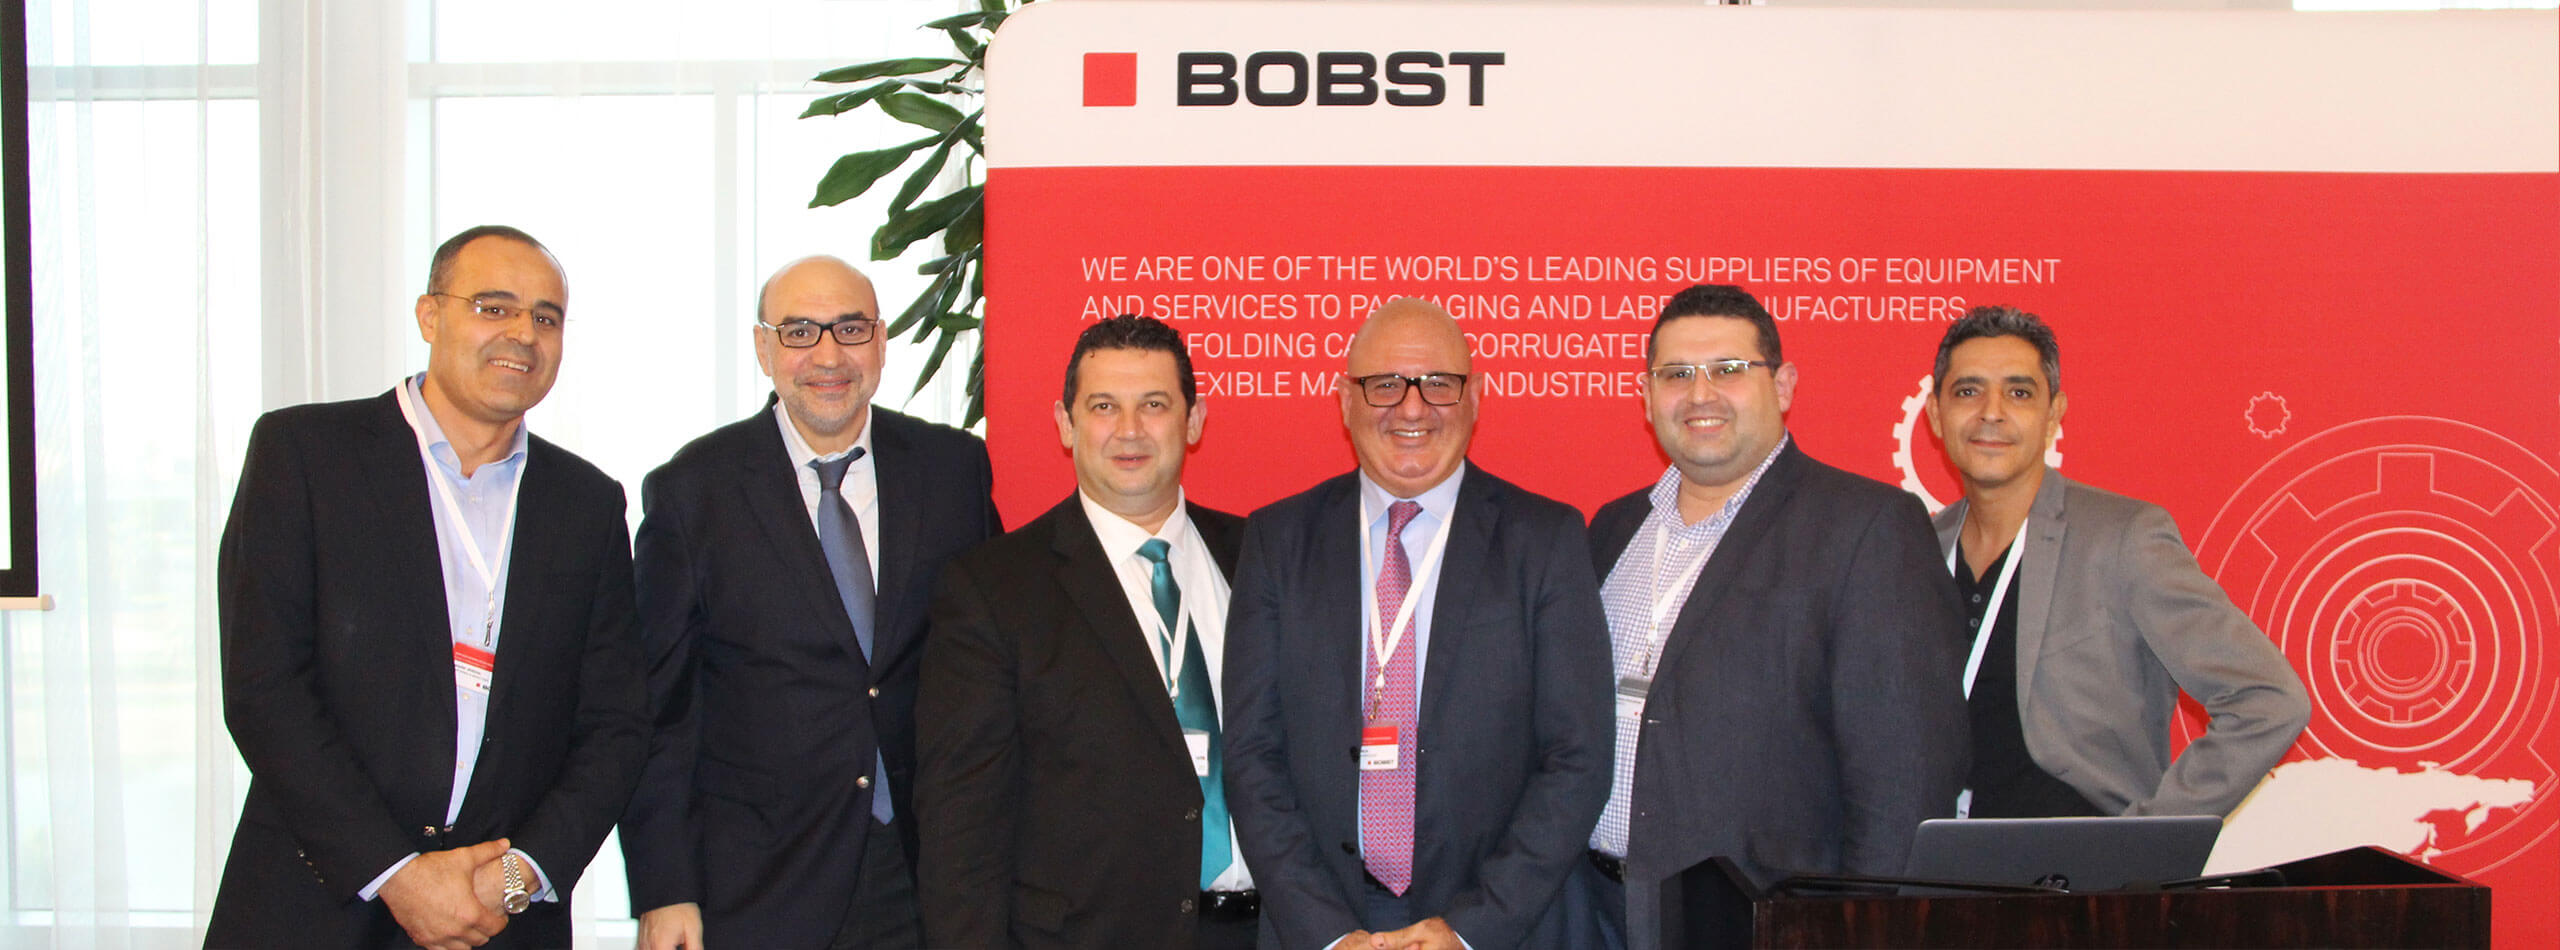 NDigitec and Bobst top management.